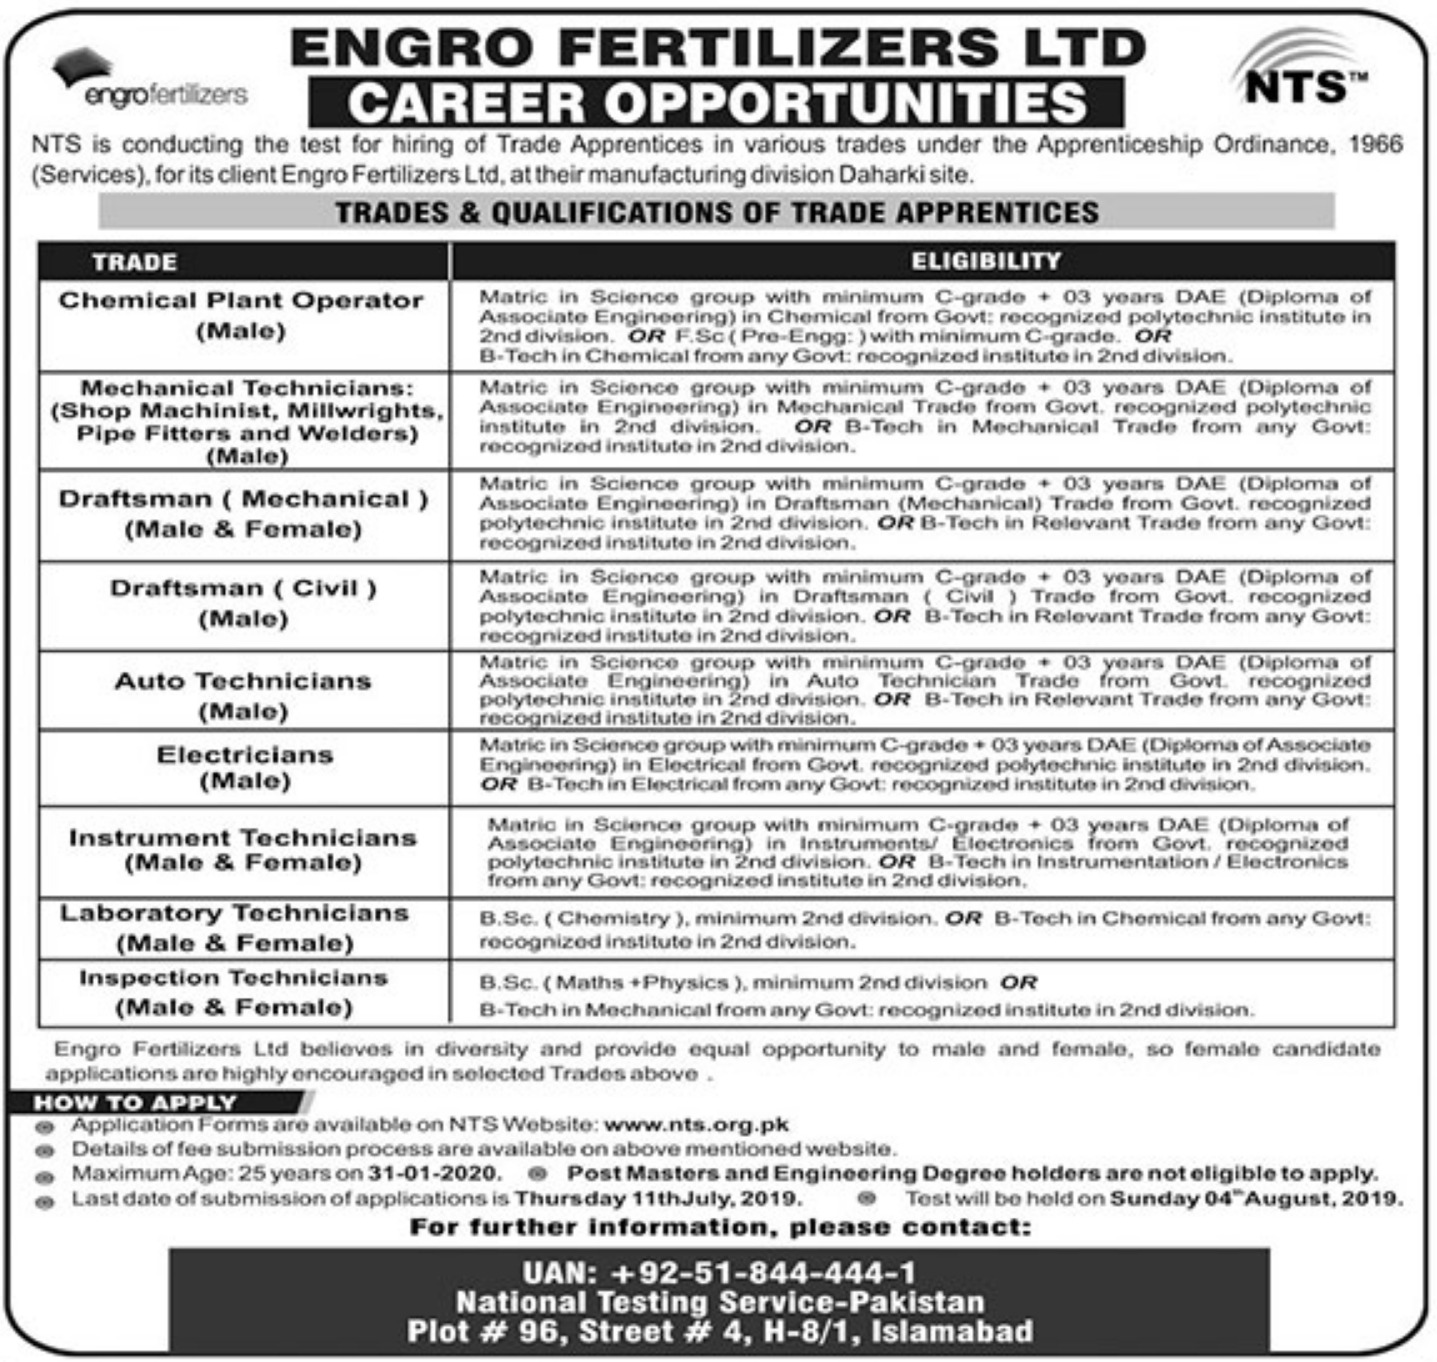 Engro Fertilizers Ltd Jobs 2019 Apply through NTS